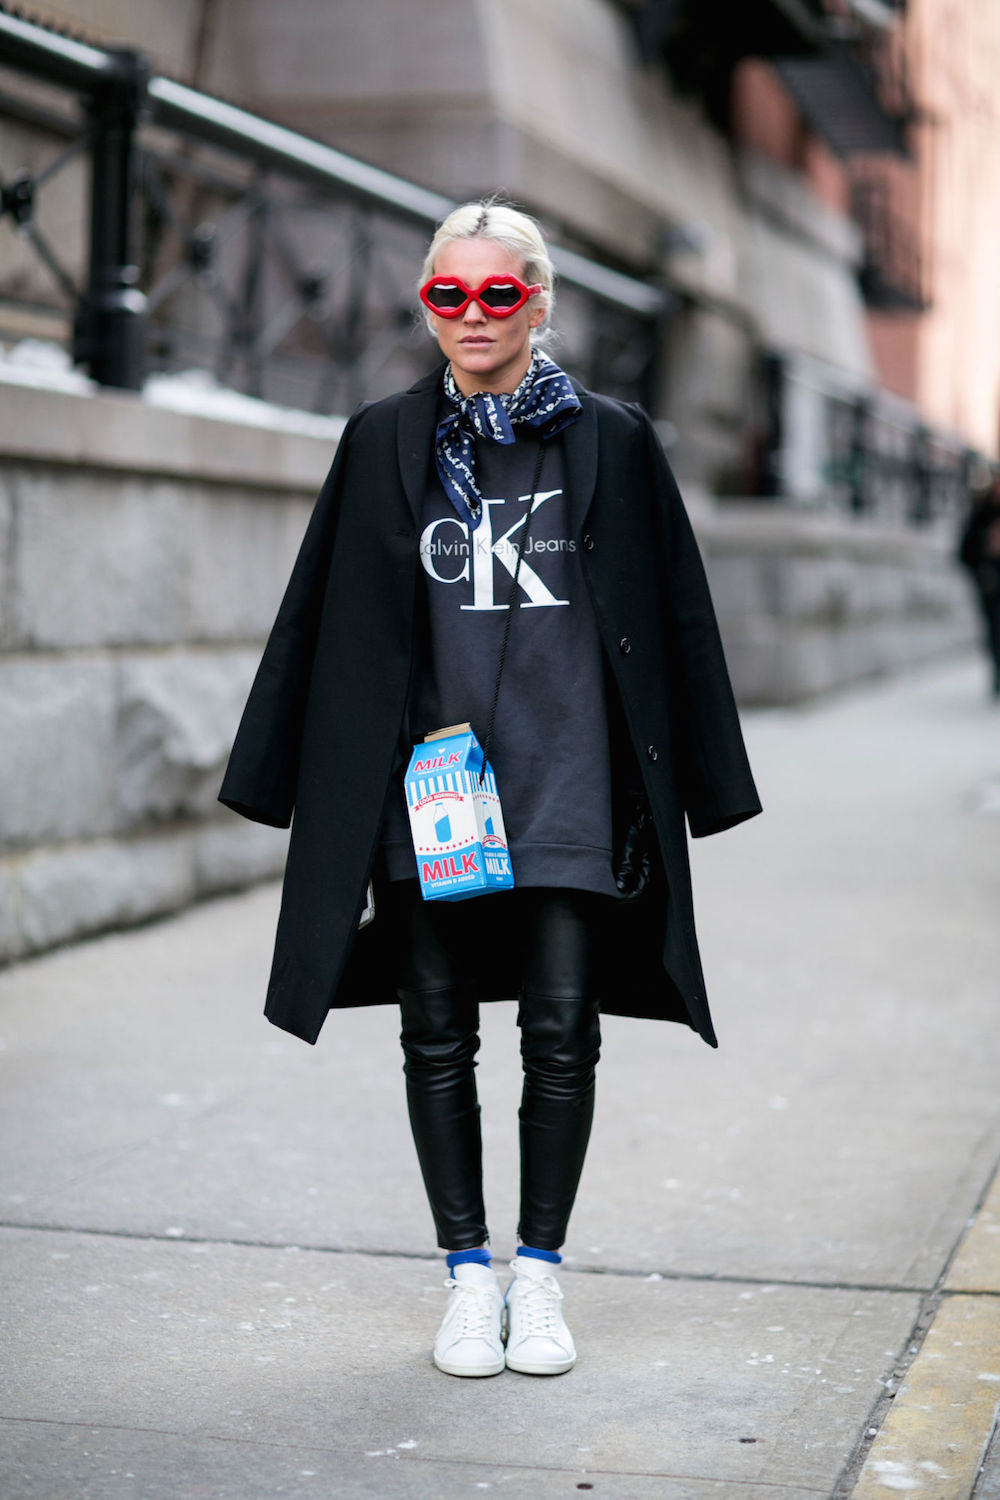 New York Fashion Week Spring 2015 Street Style - winter coat and statement bags